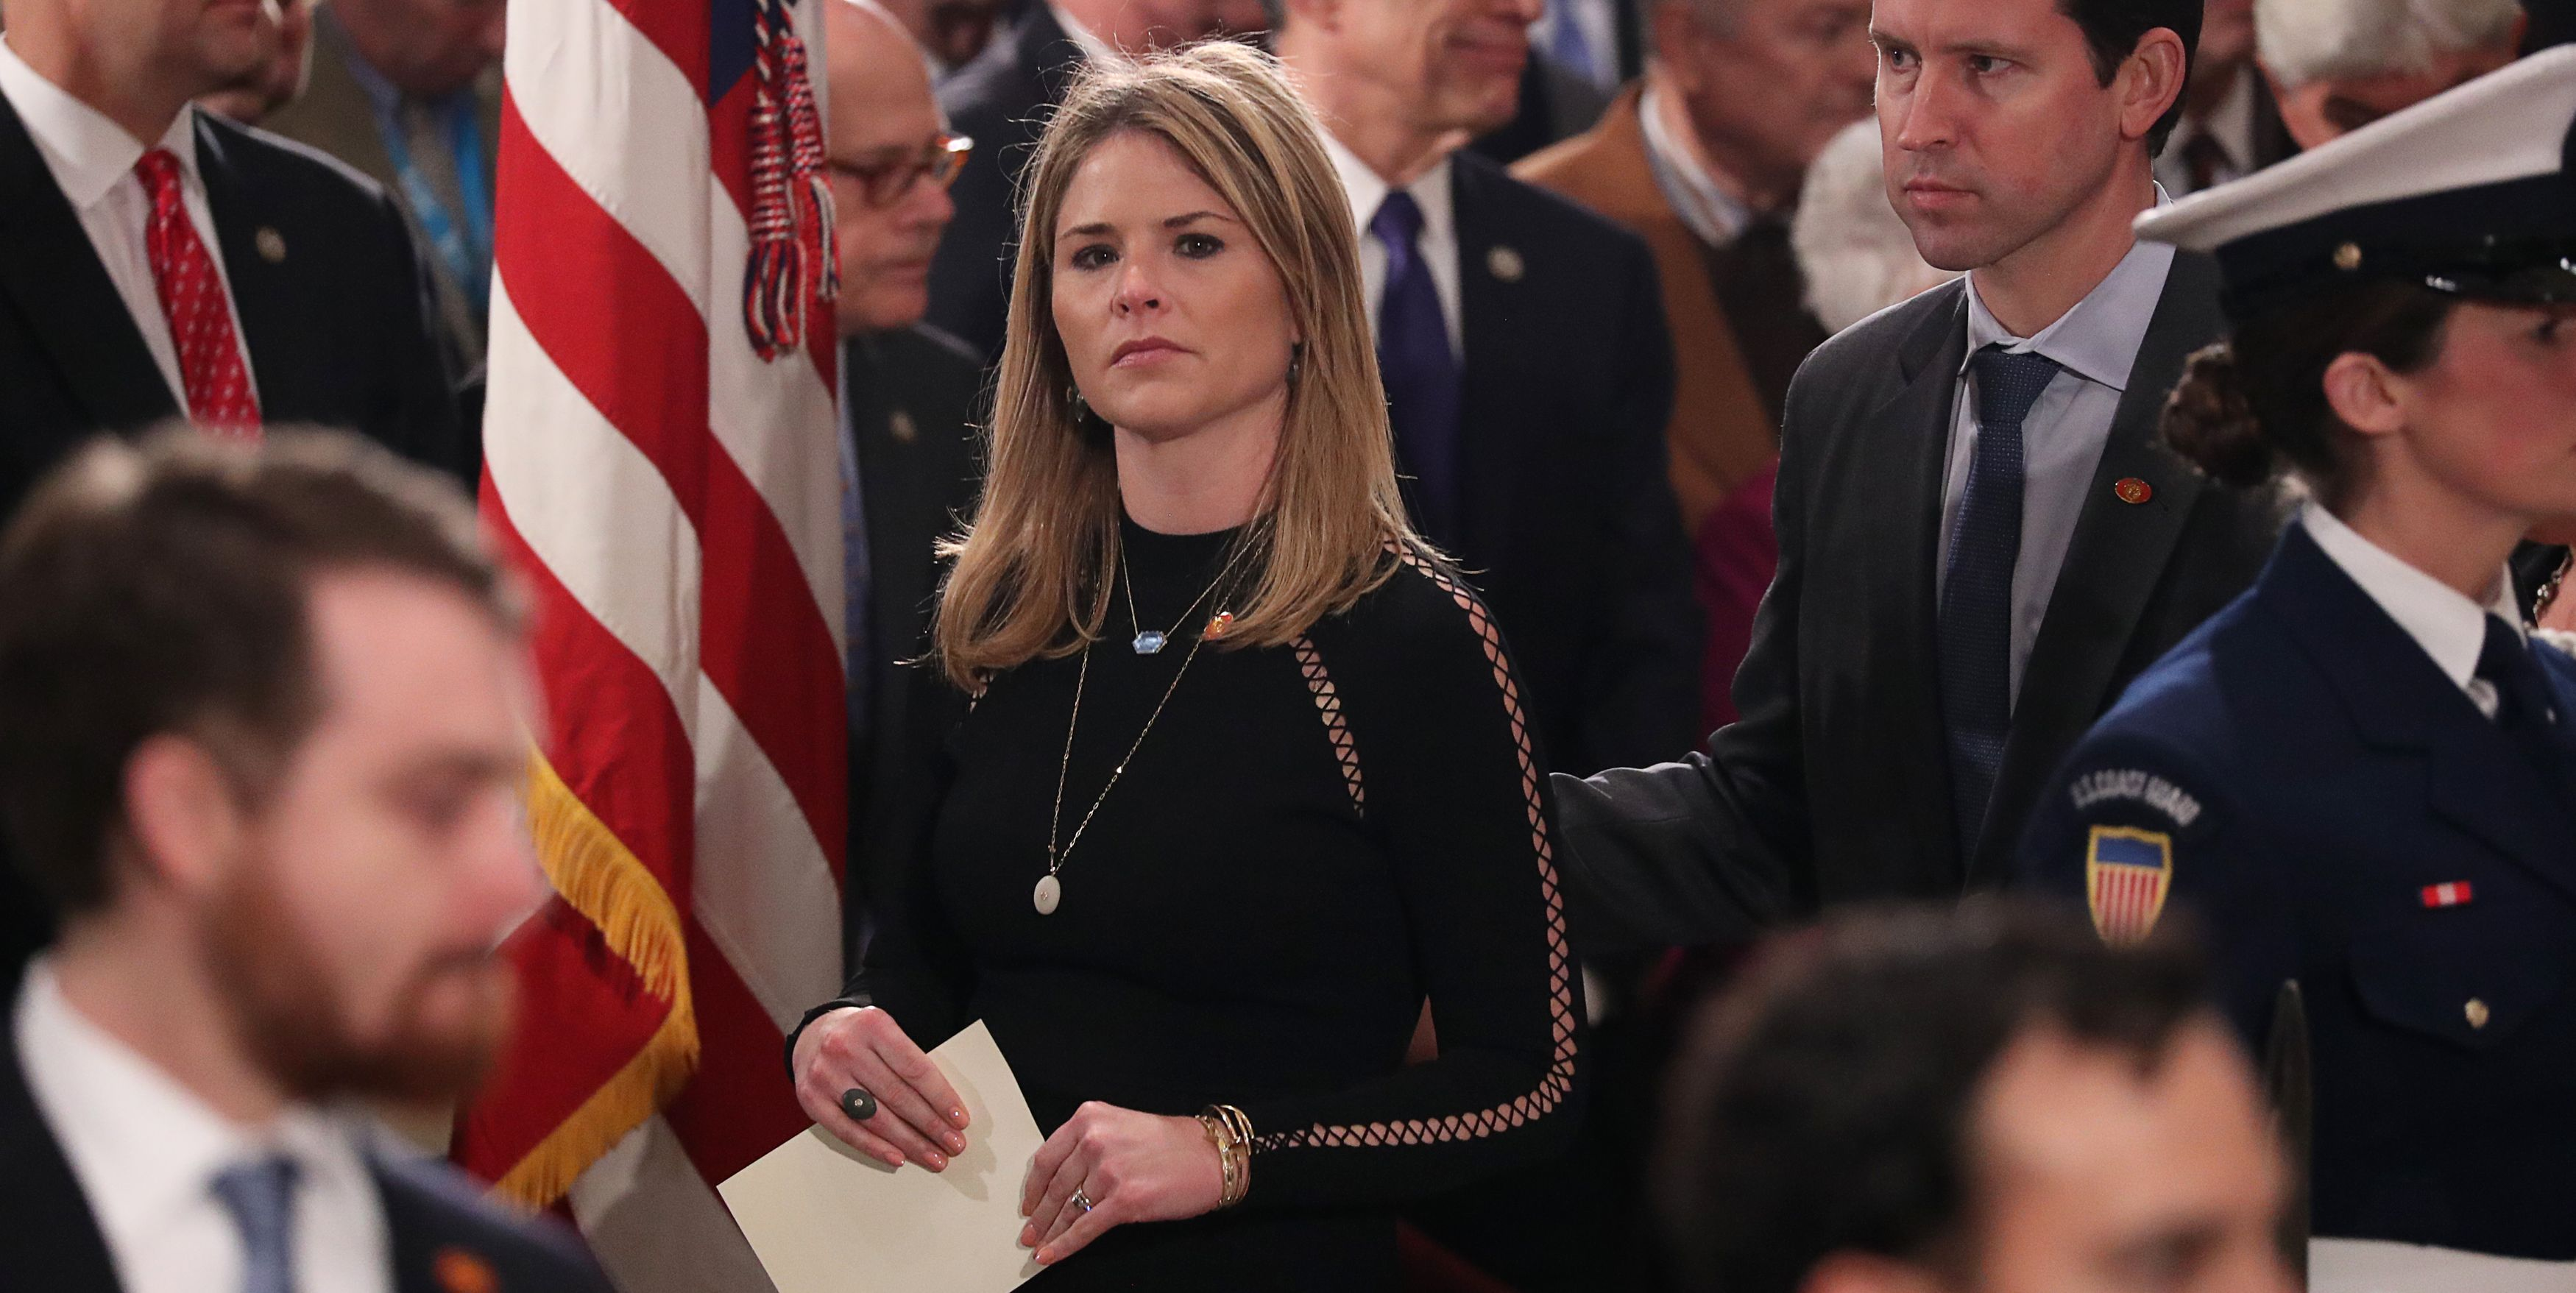 Jenna Bush Hager Shares How it Feels to Lose Someone in the Public Eye